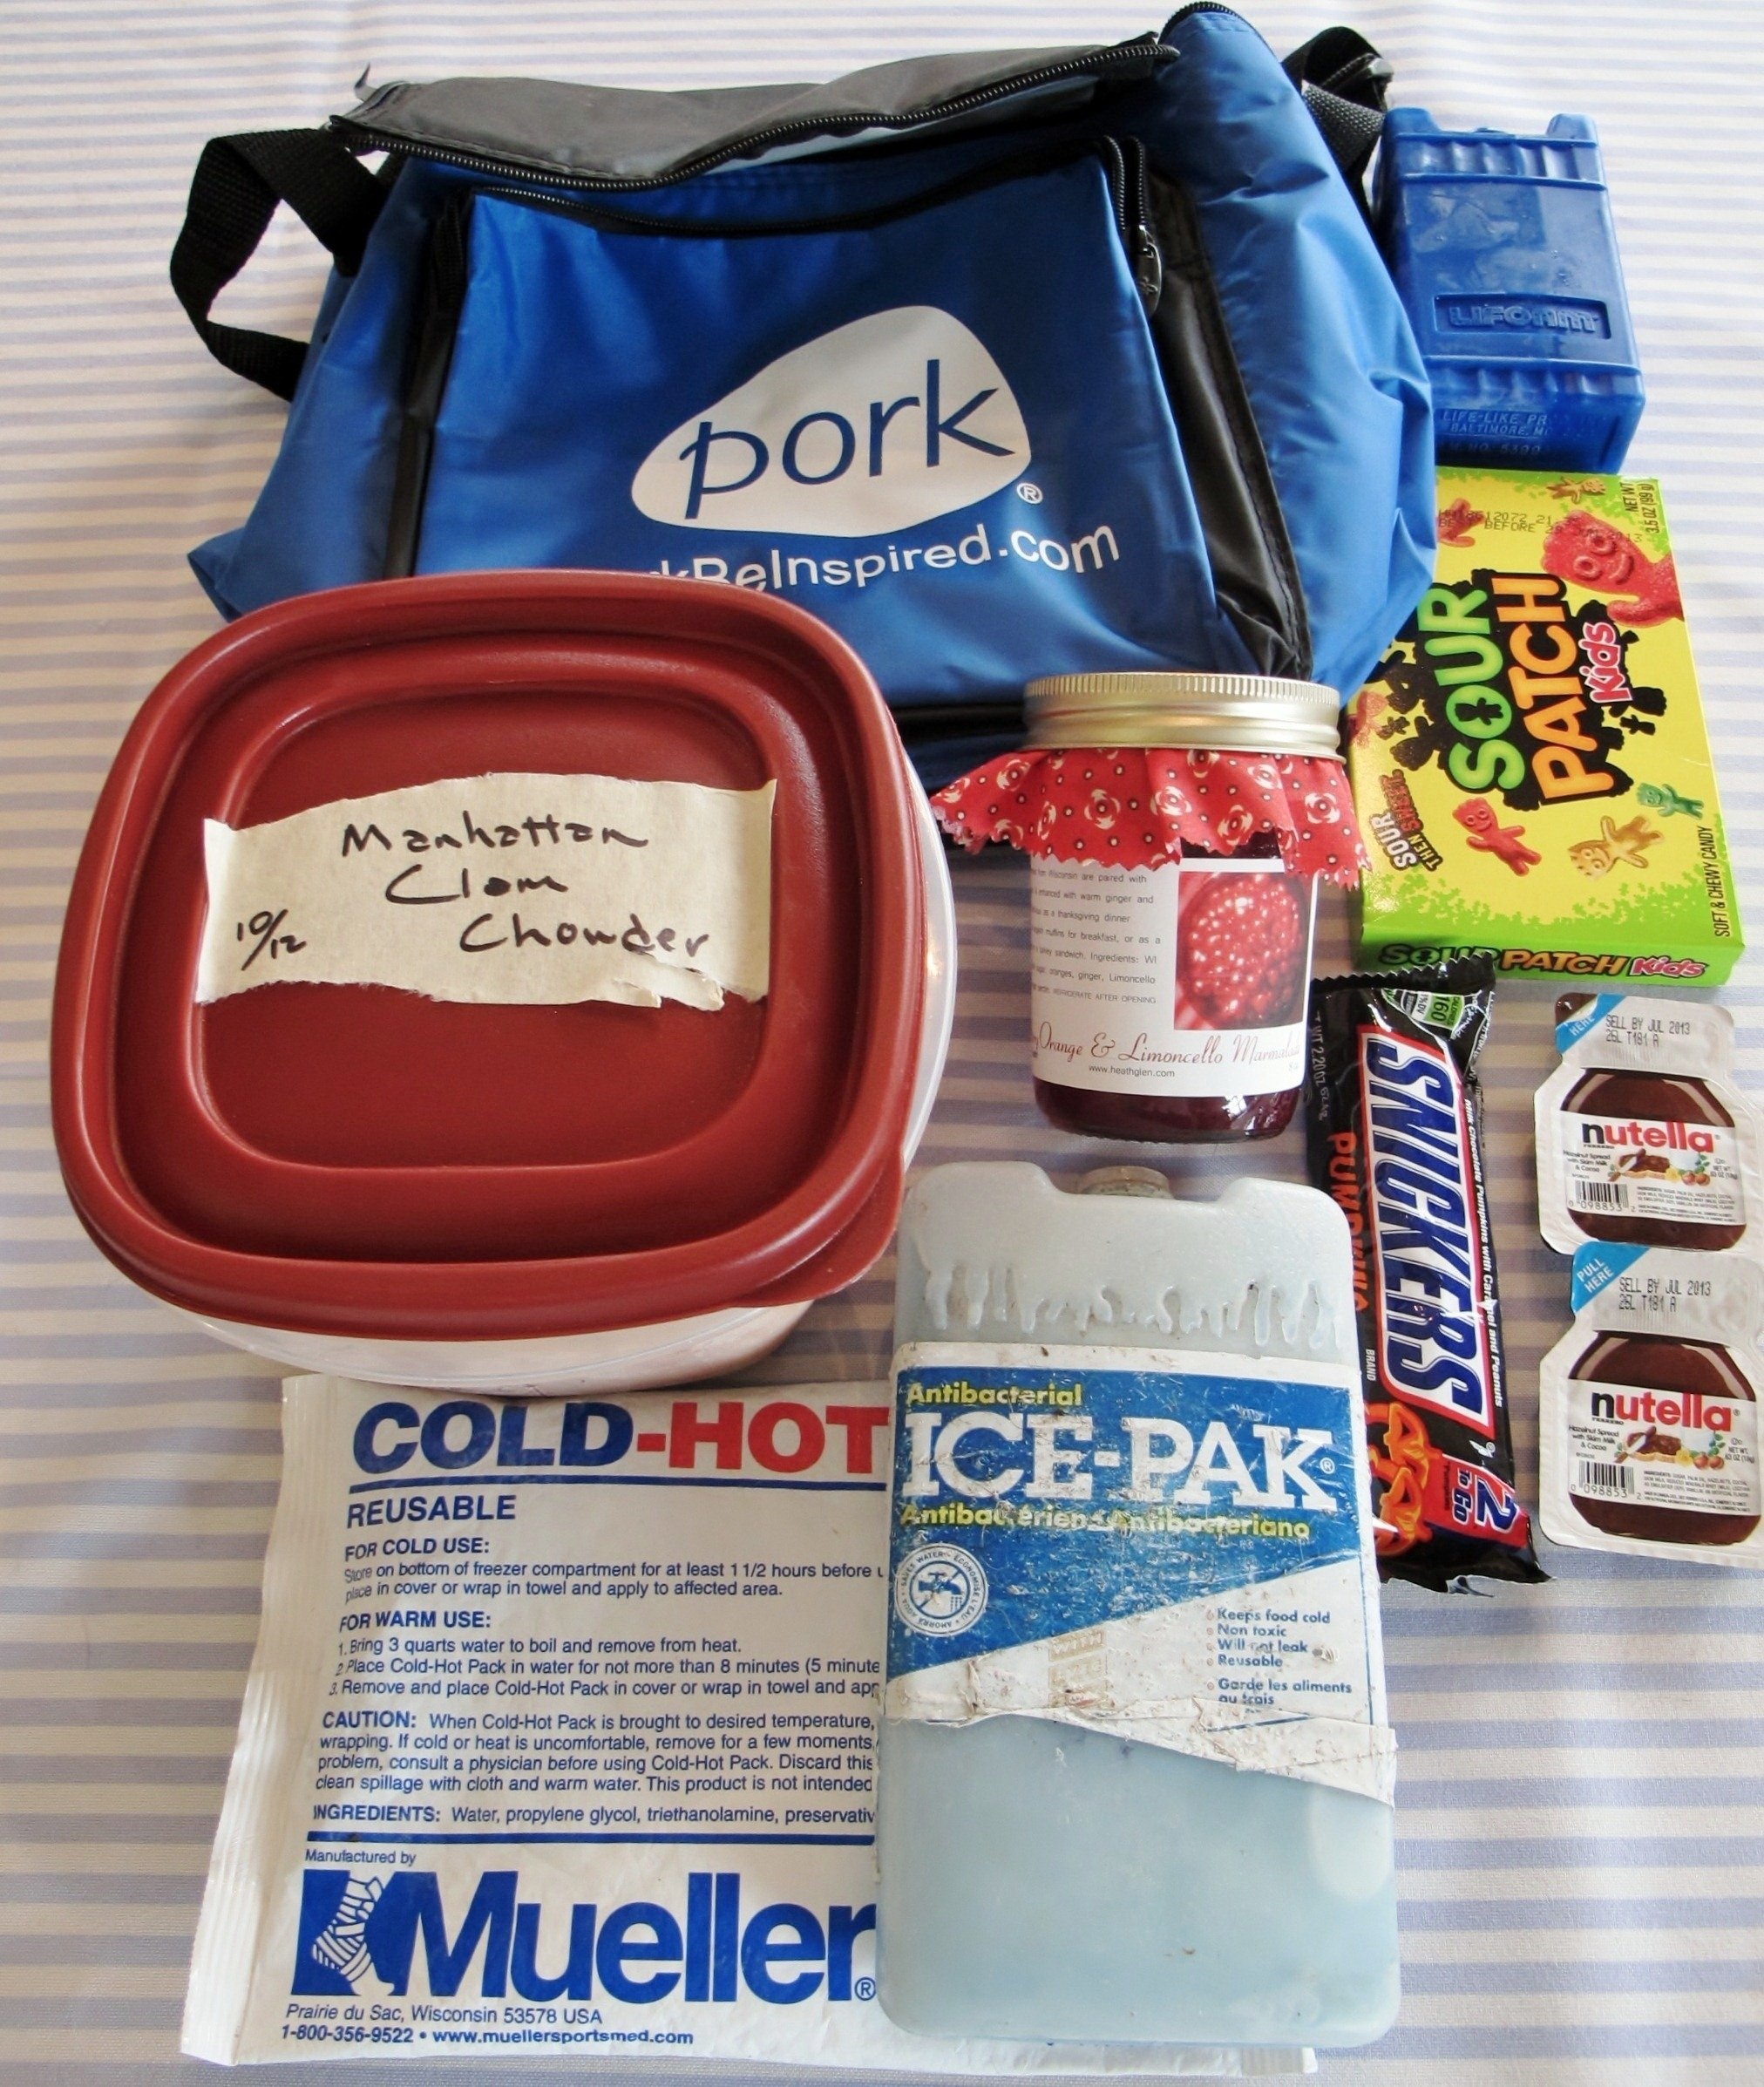 10 Trendy Care Packages For College Students Ideas college care package for the boy late fall halloween 7 2021